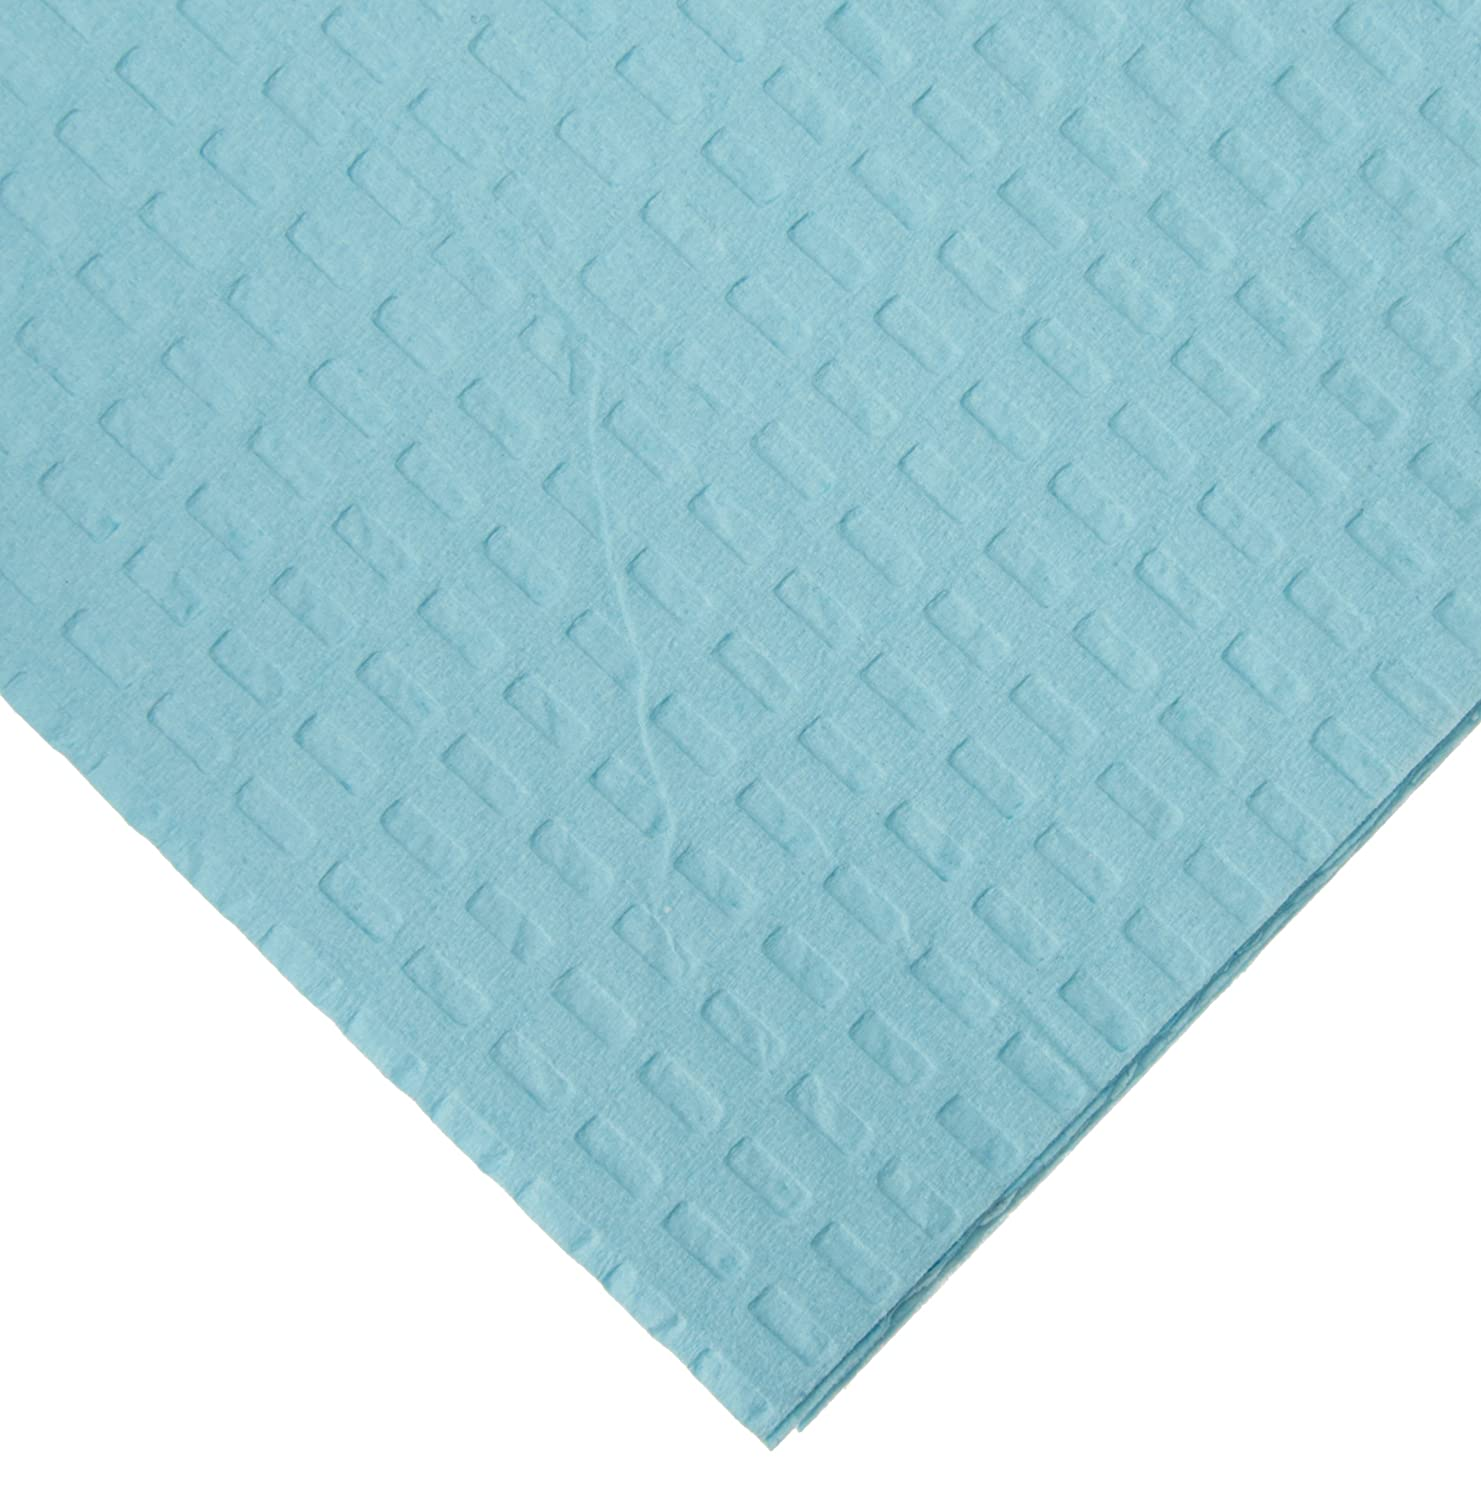 TIDI Ultimate Bibs Towels Blue Challenge the lowest price of Japan 13